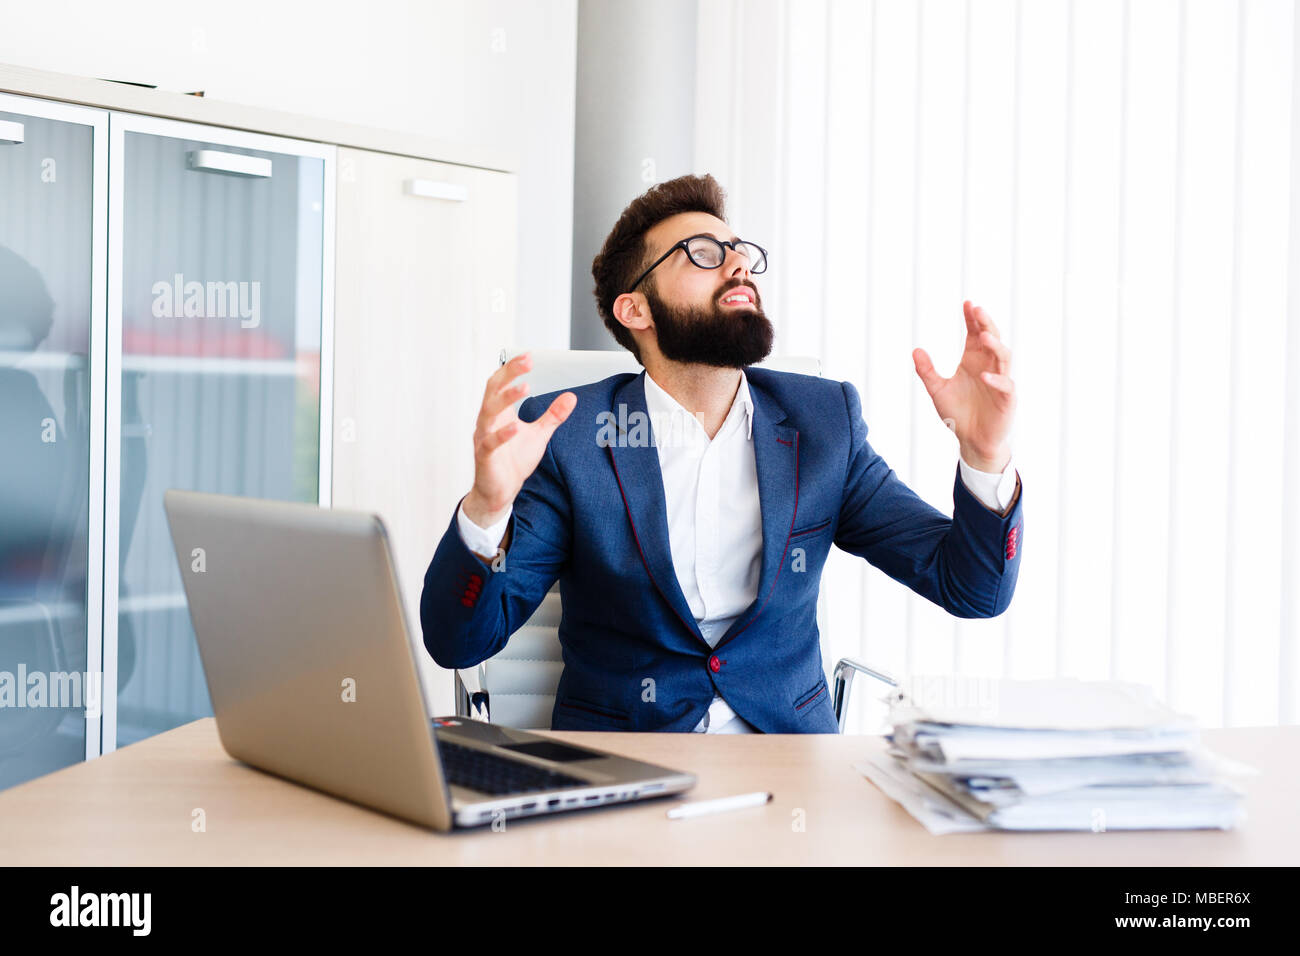 Young Businessman Has Very Stressful Day At Work Stock Photo